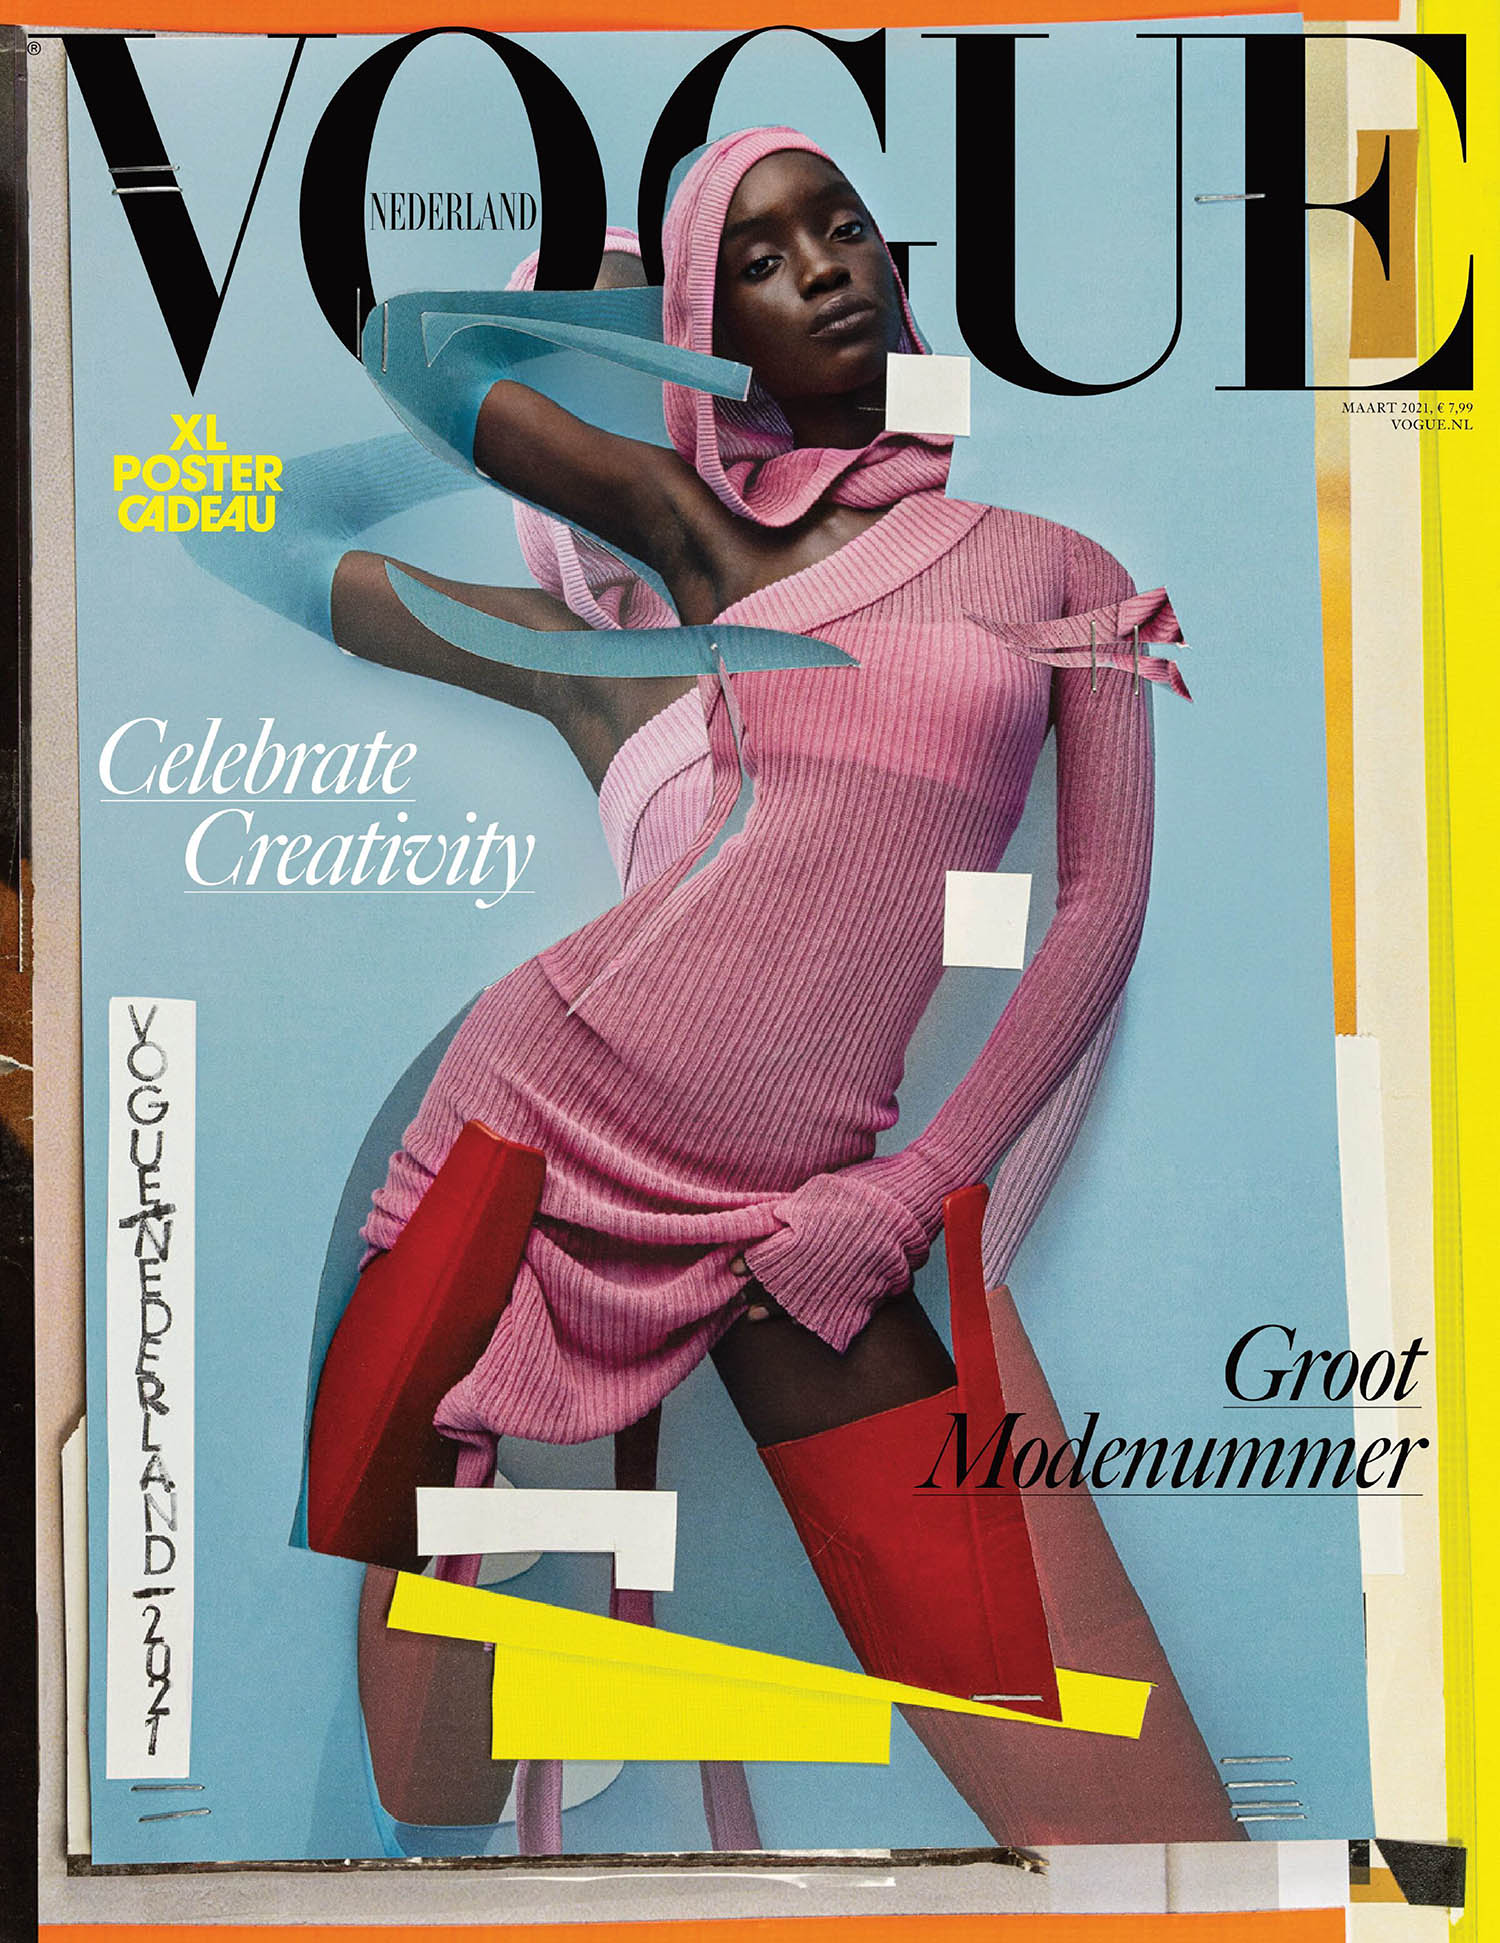 Maty Fall covers Vogue Netherlands March 2021 by Julia Noni